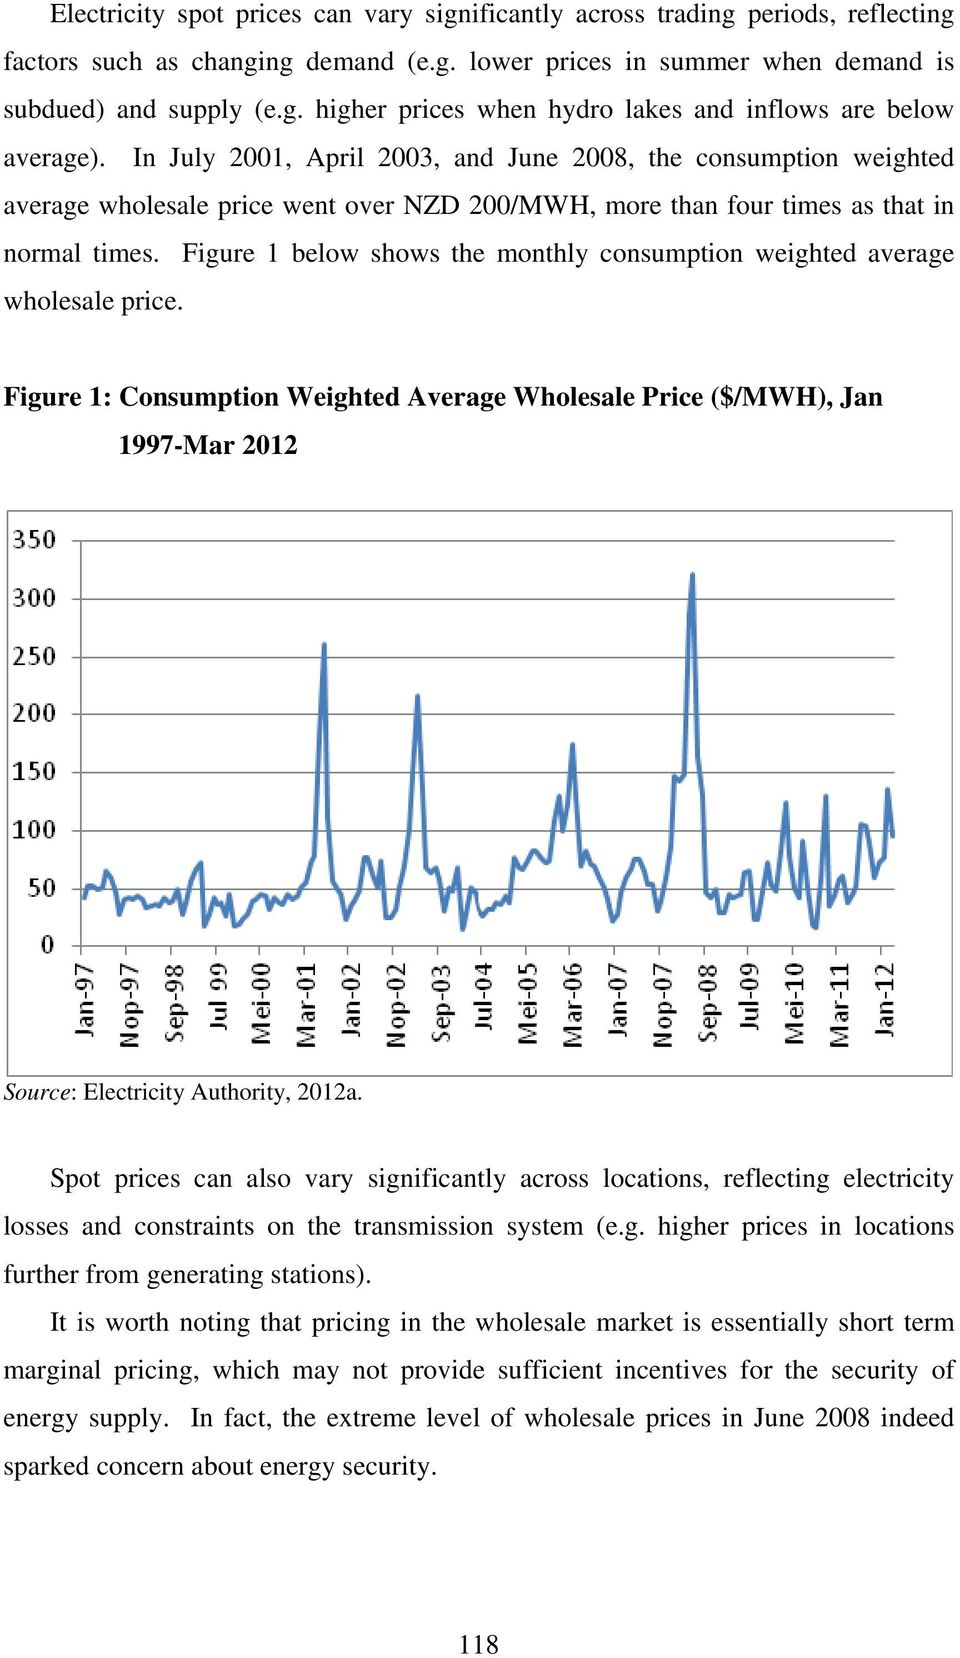 Figure 1 below shows the monthly consumption weighted average wholesale price. Figure 1: Consumption Weighted Average Wholesale Price ($/MWH), Jan 1997-Mar 2012 Source: Electricity Authority, 2012a.